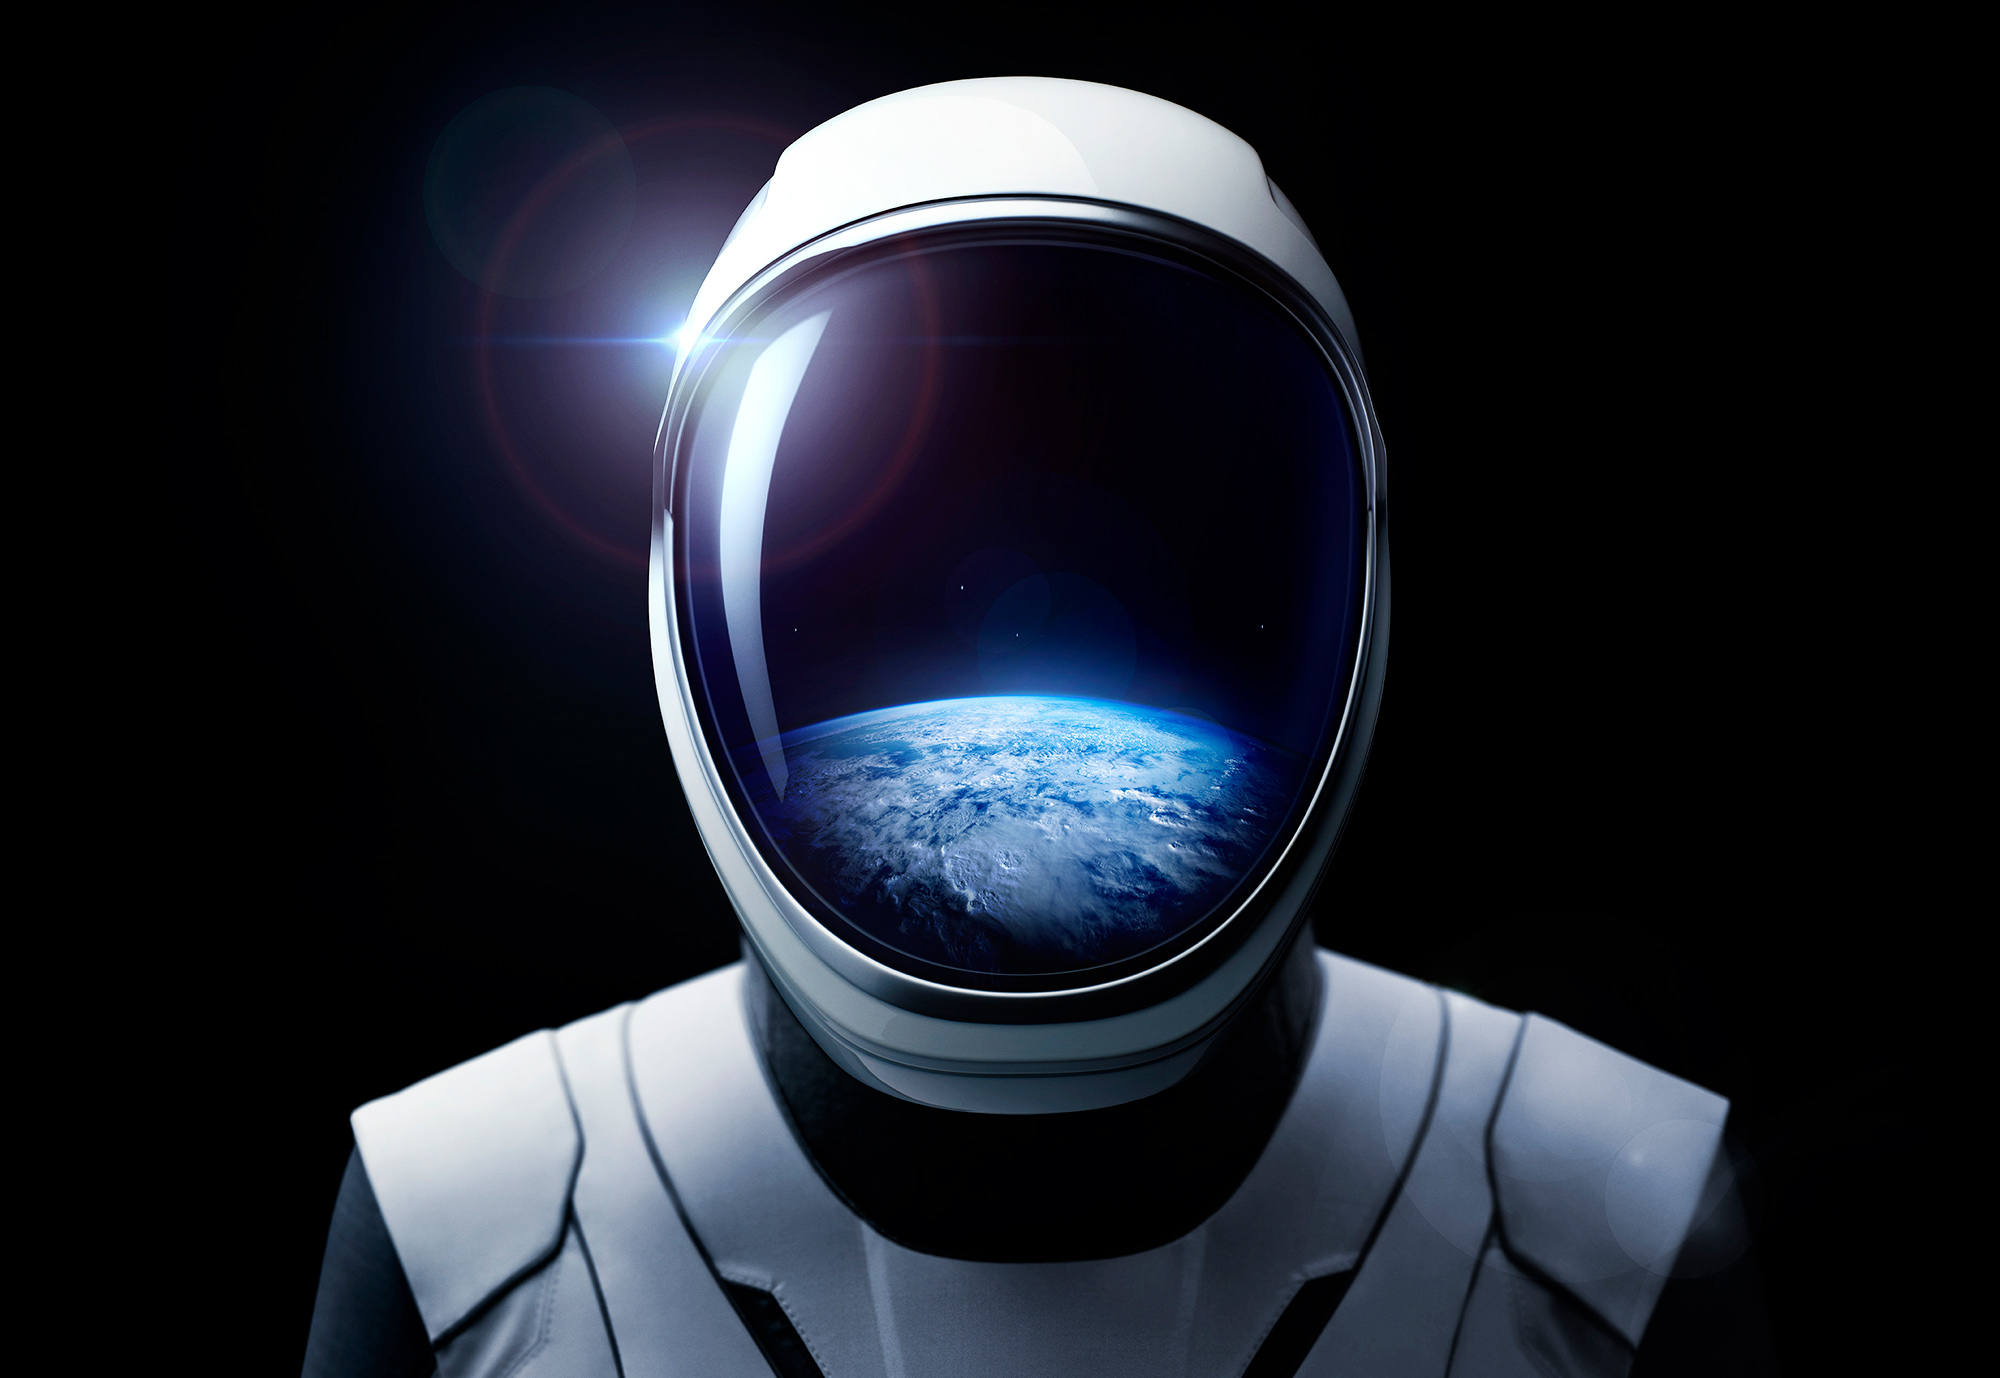 Farner_Suit_Black_Lens_Suit_Flare_Earth-Recovered